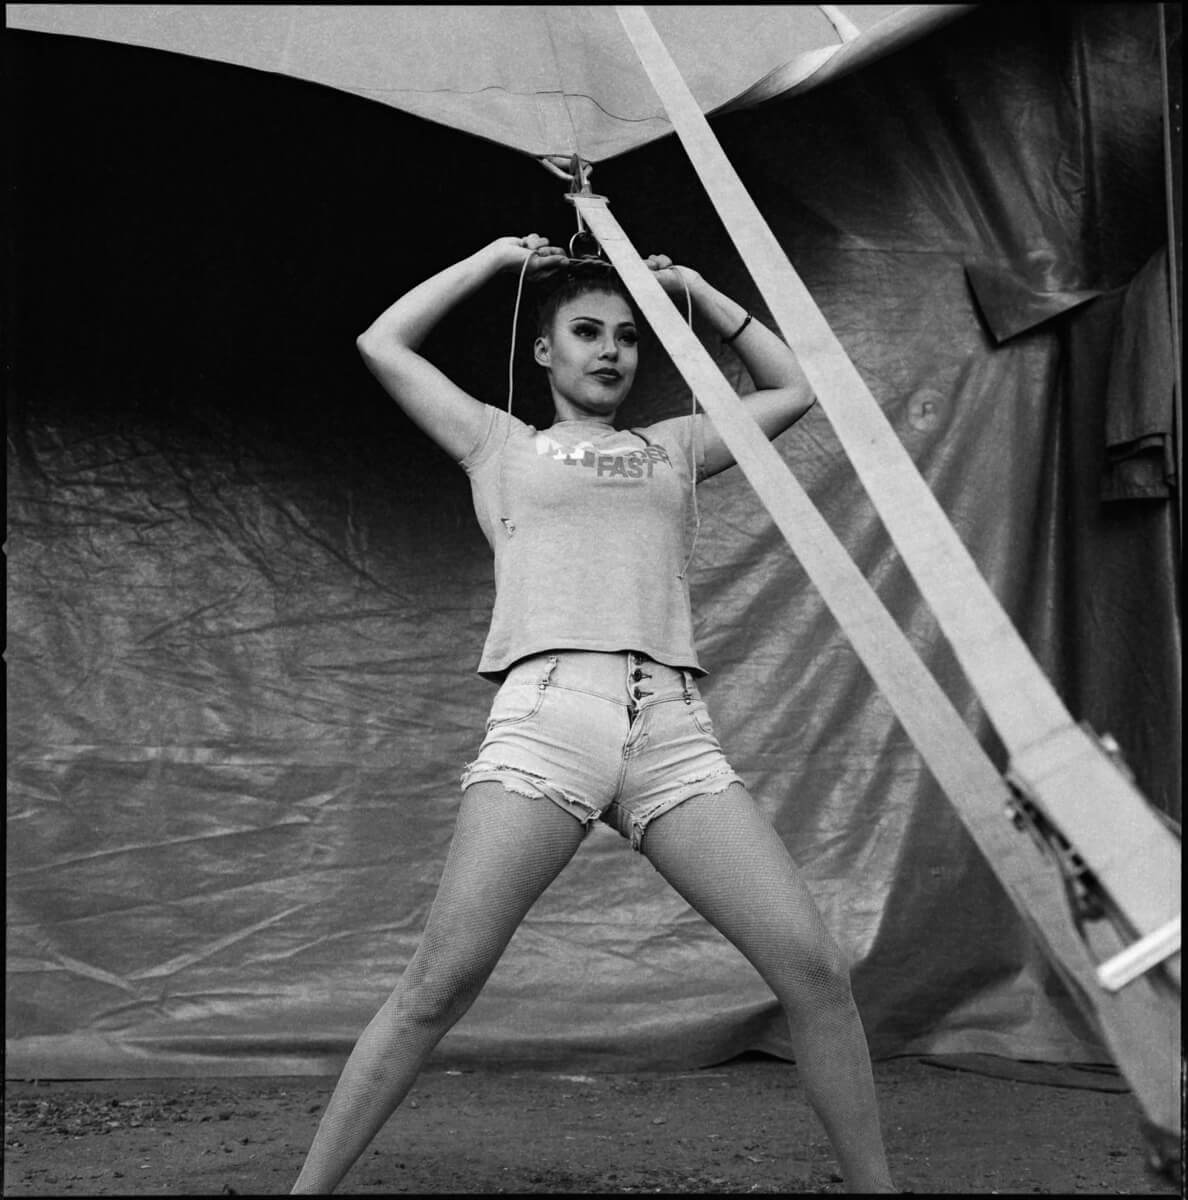 5 Frames... Of the Atayde Brothers Circus on Kodak T-MAX 400 (EI 400 / 120 Format / Hasselblad 503CX + Planar CF 80mm f/2.8) - by Abel Montesino